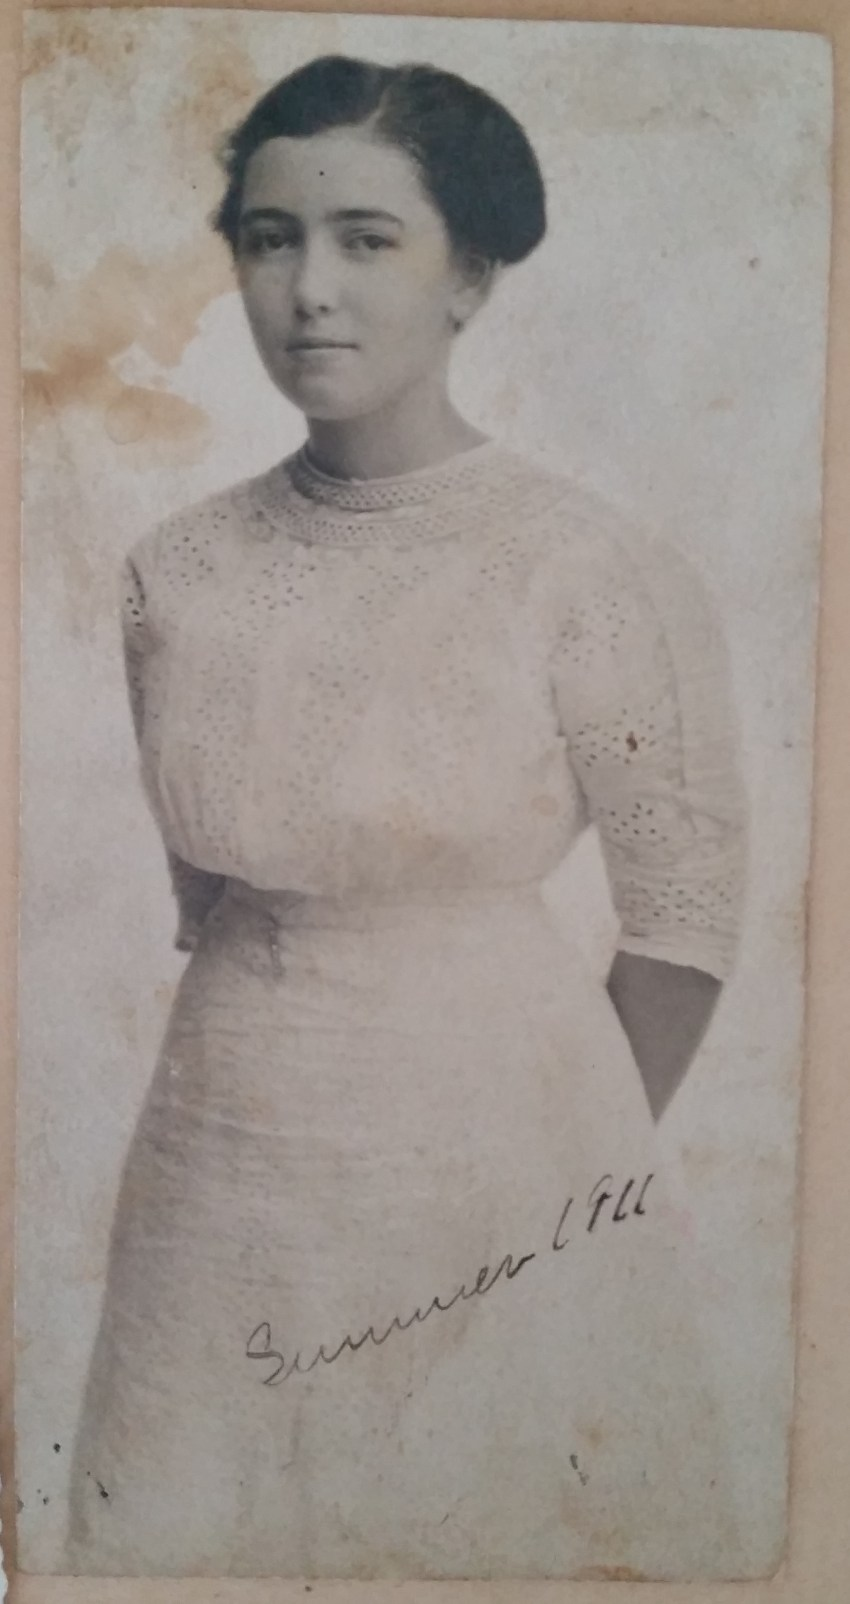 Mary Frances Piercy Nichols - She was about 19 a student in nursing school at UT in Memphis